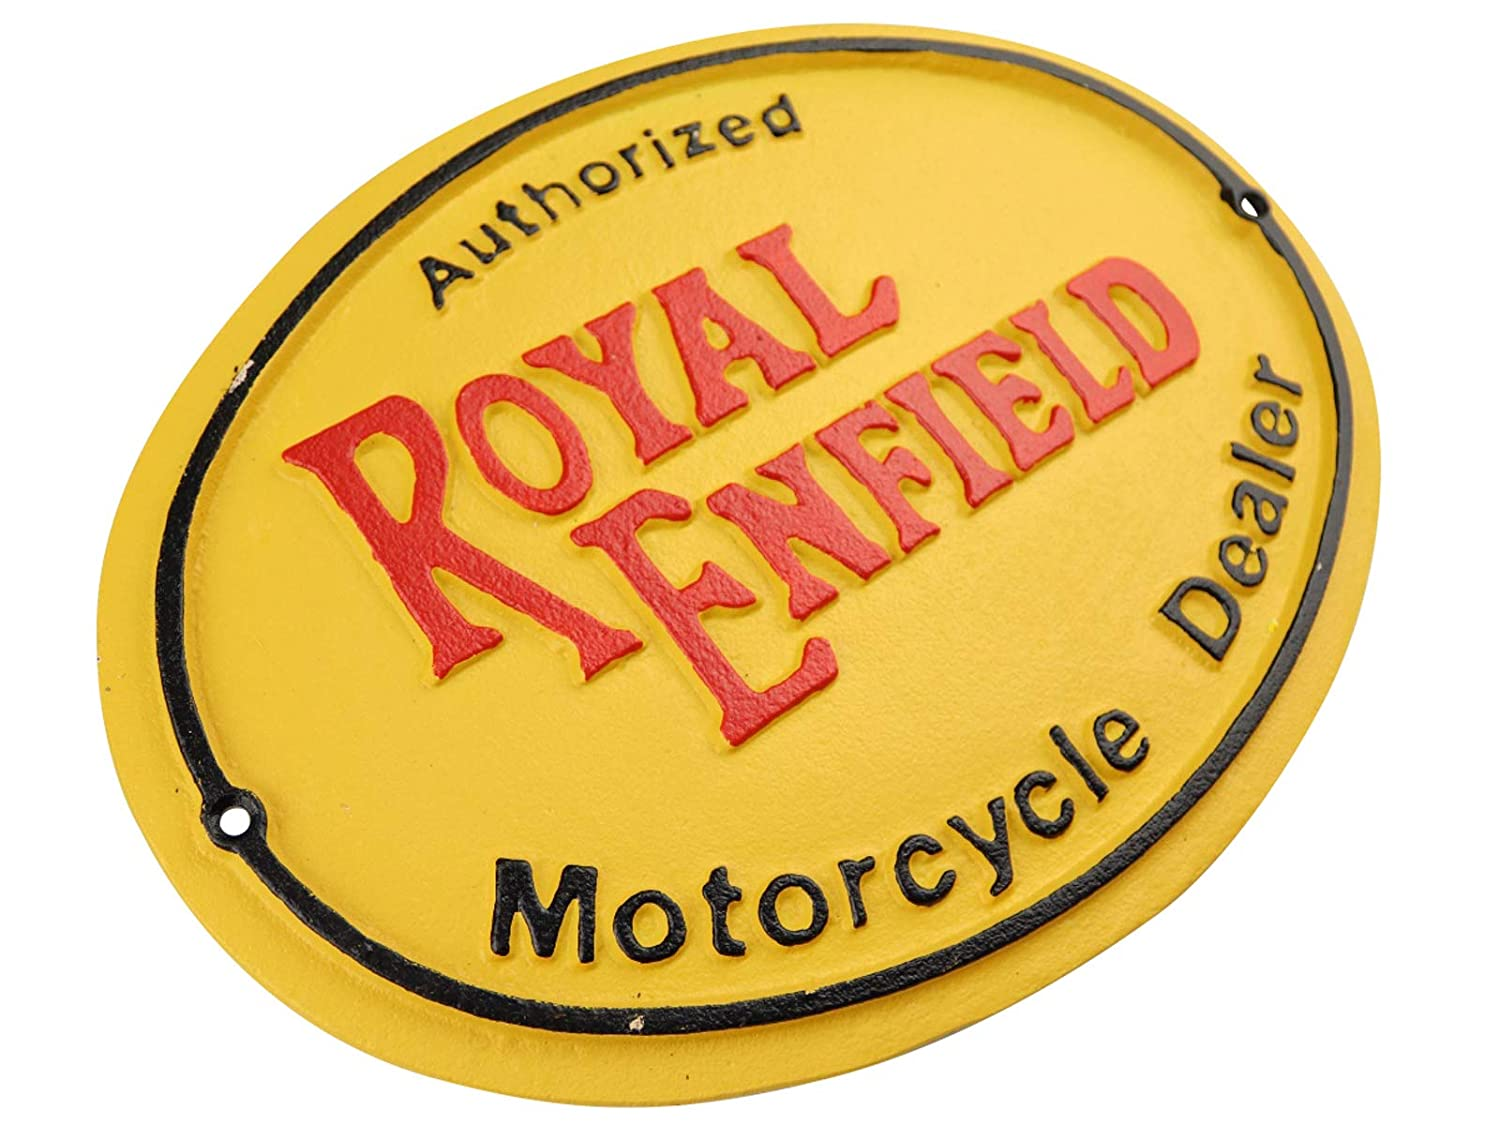 Authorized Royal Enfield Motorcycle Dealership Logo Cast Iron Sign Plaque